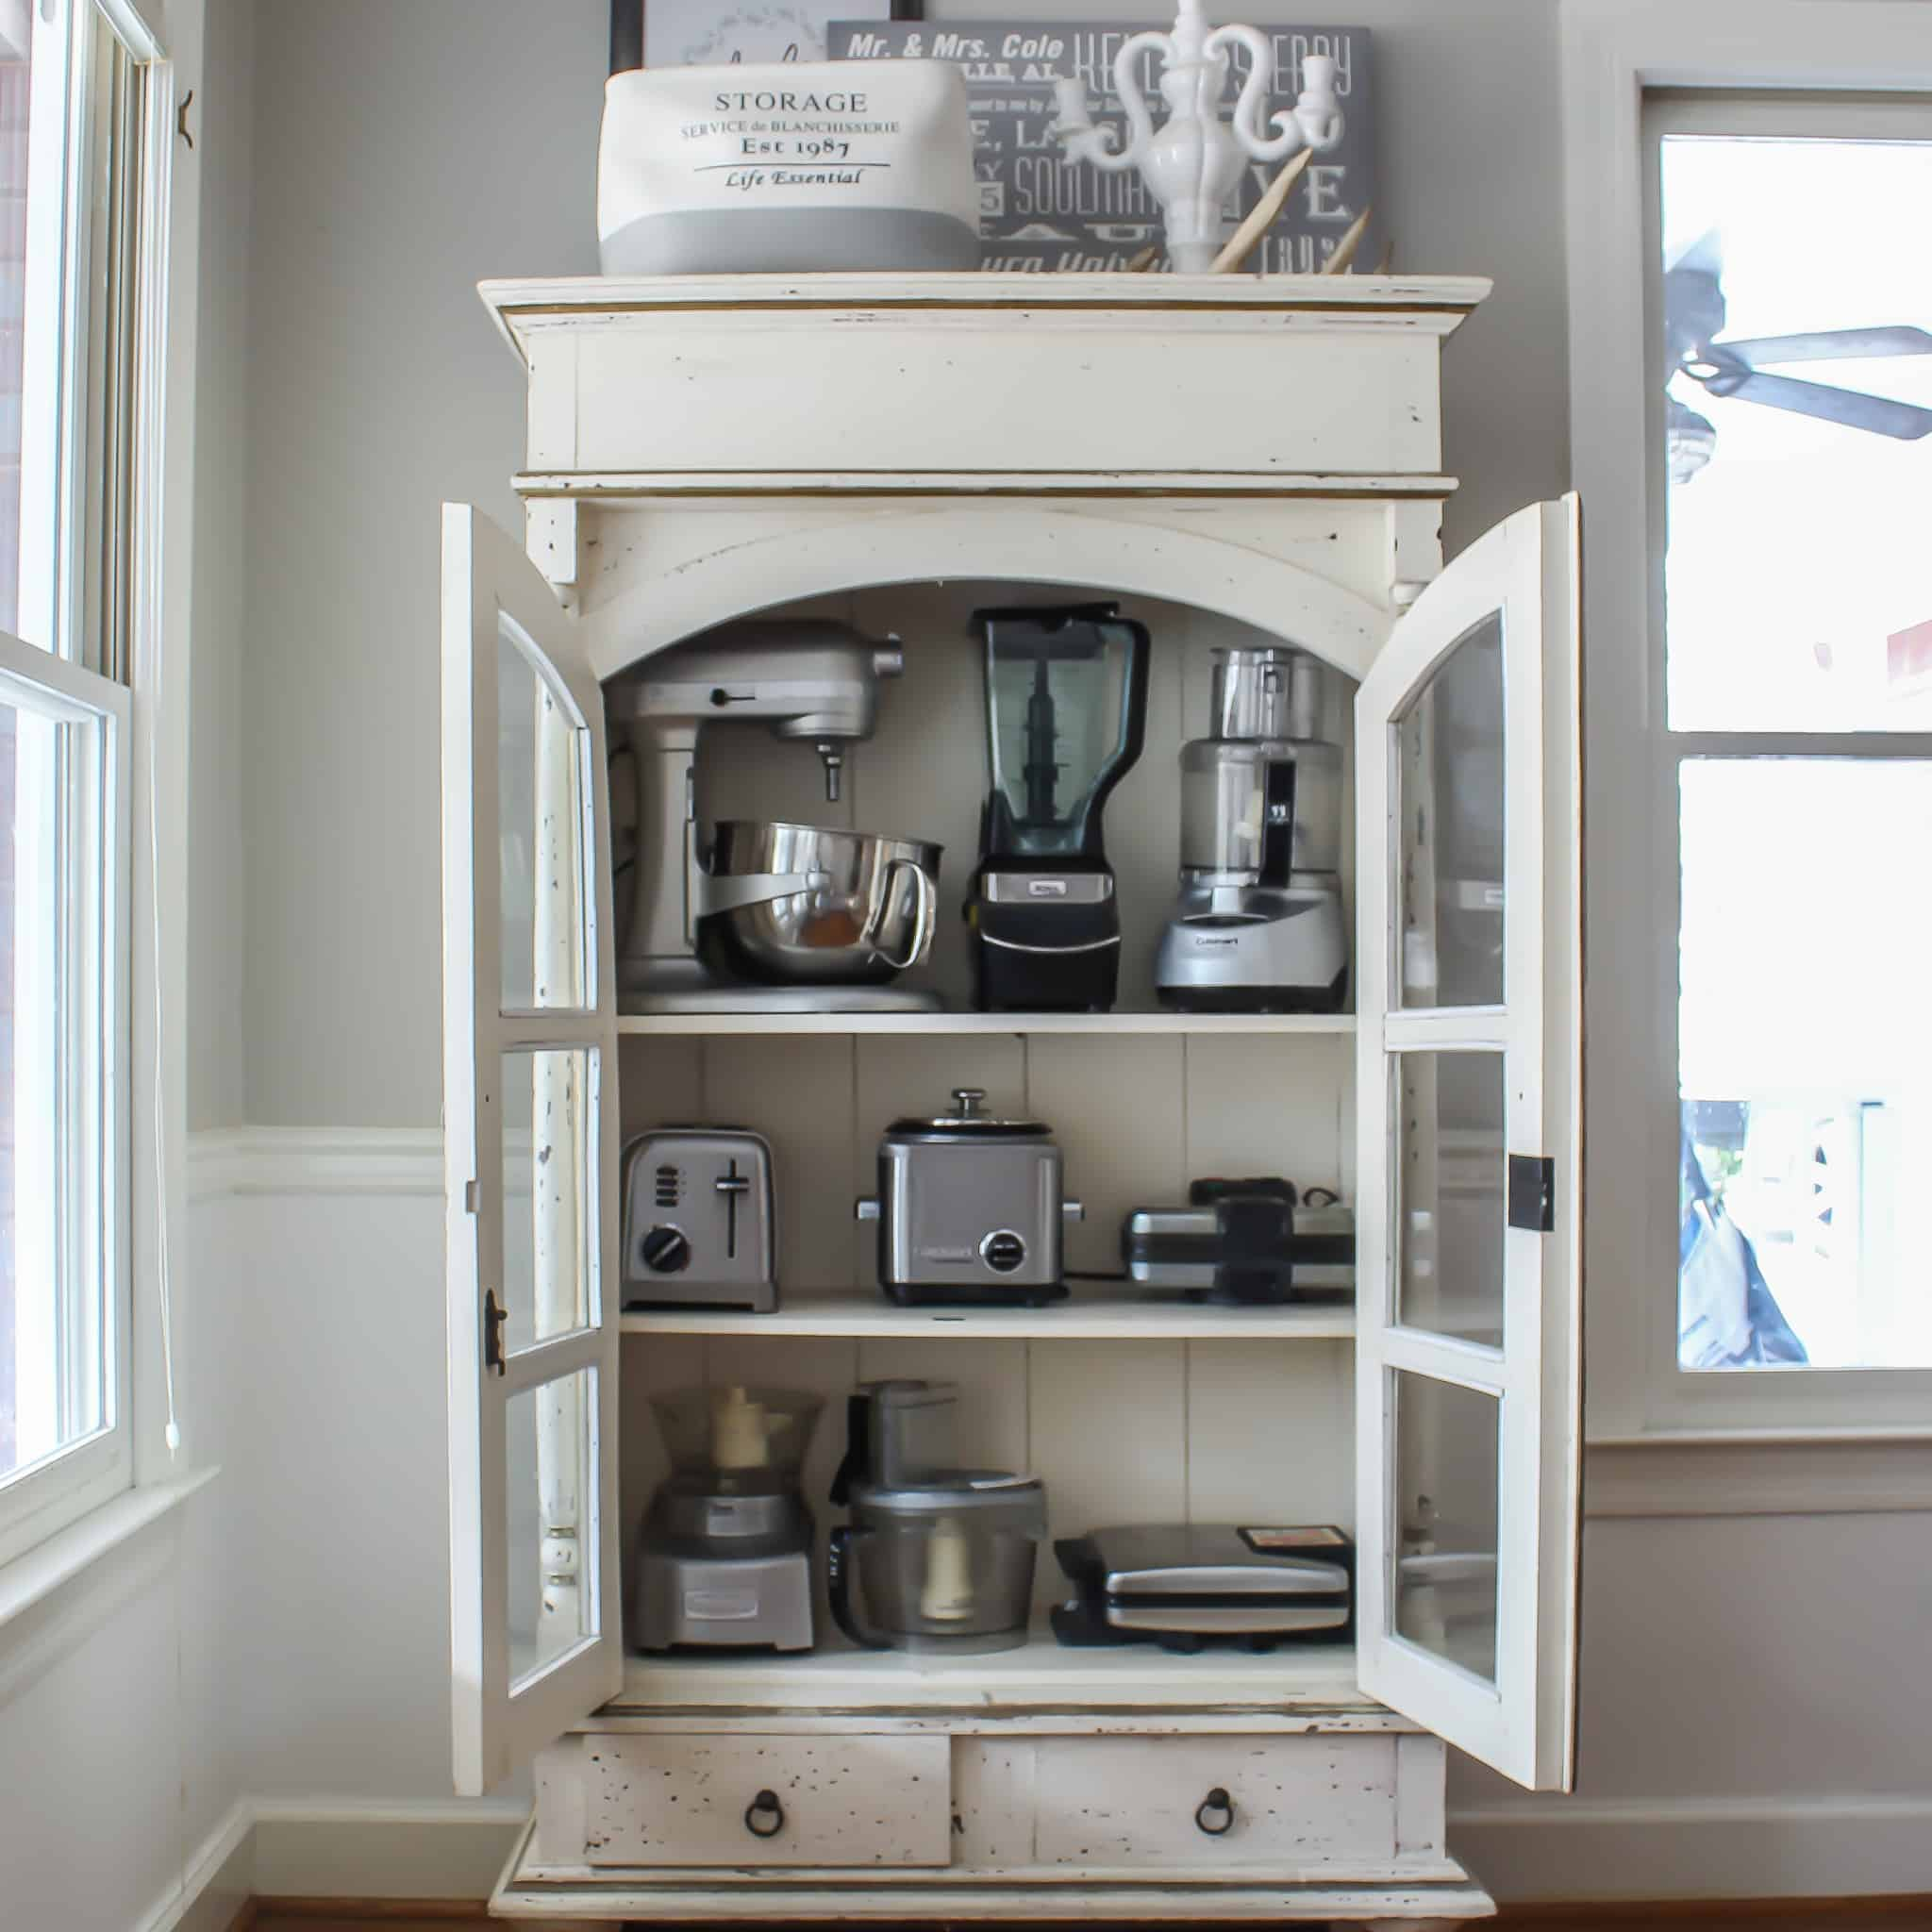 A cabinet to store small kitchen appliances.